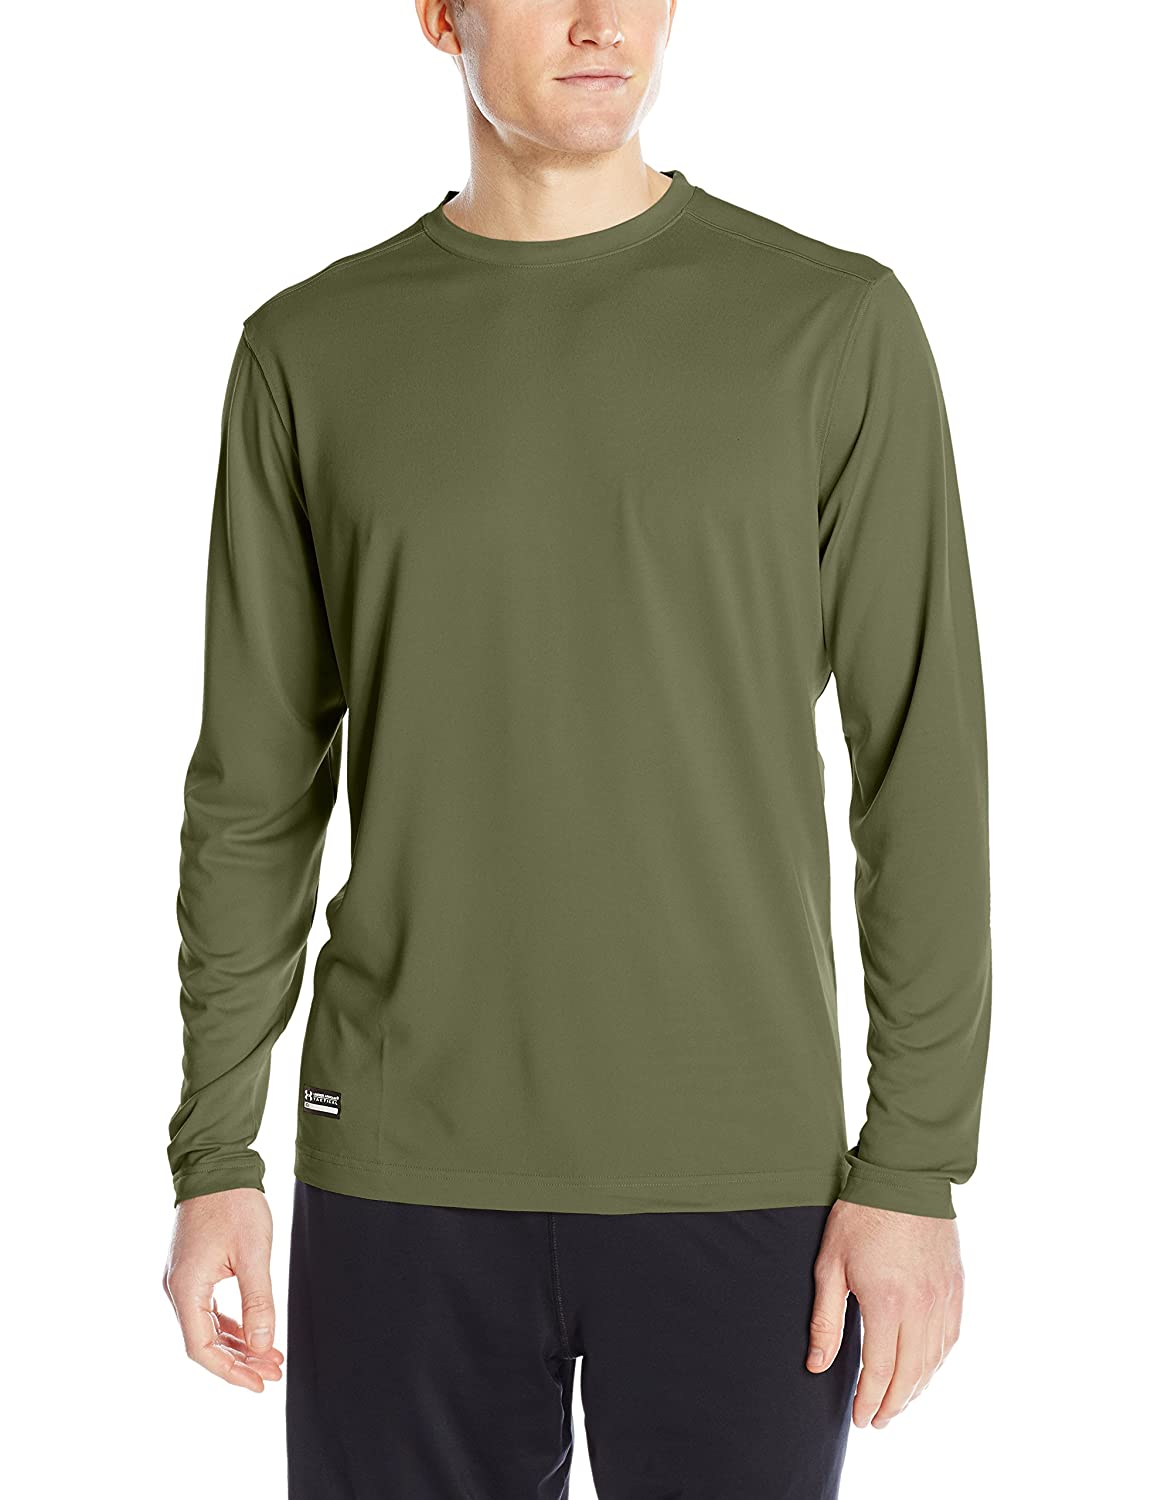 Amazon.com: Under Armour Men's Tactical UA Tech Long Sleeve T ...